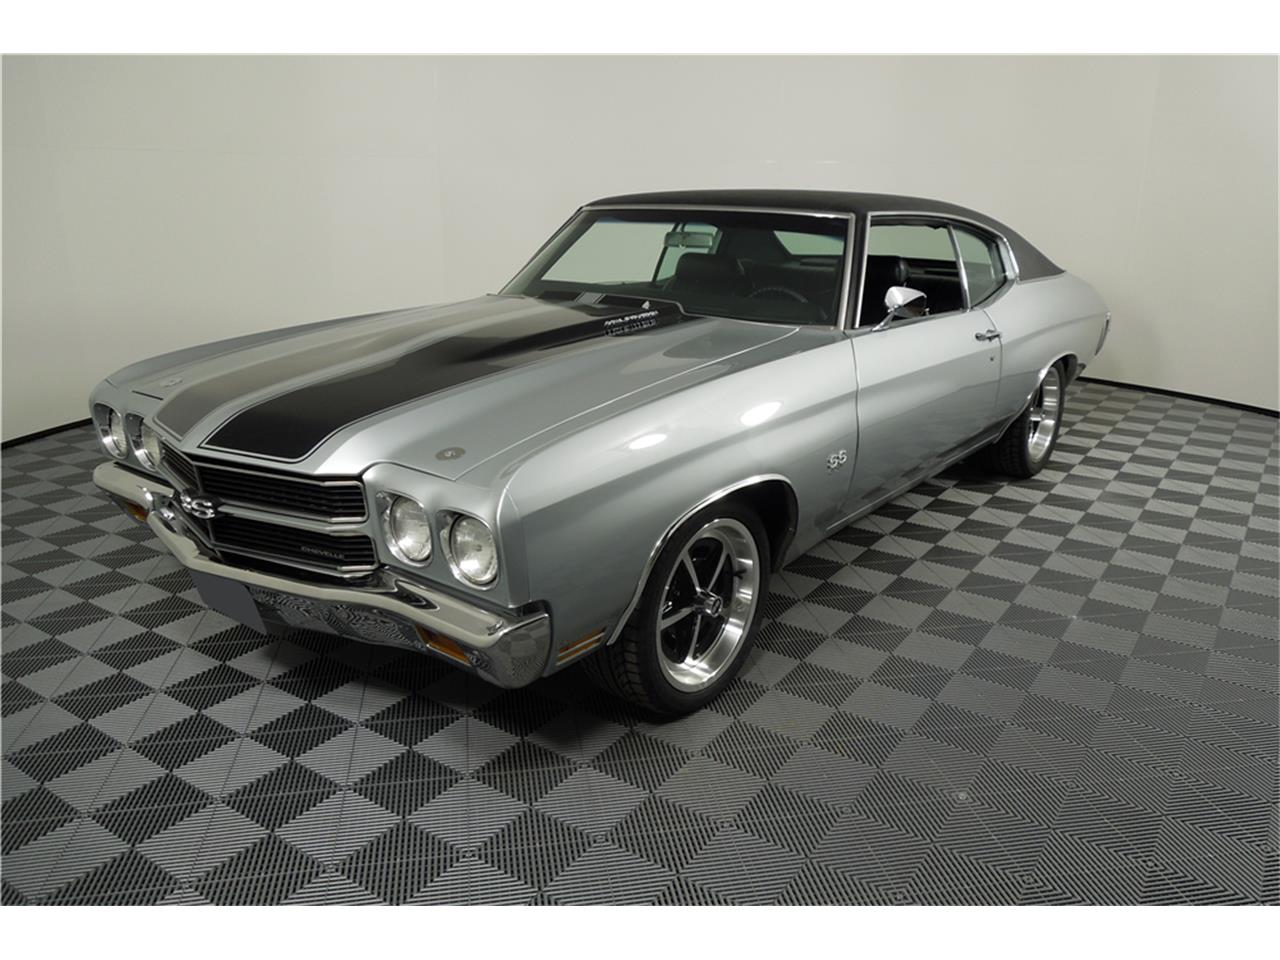 1970 Chevrolet Chevelle Ss For Sale Classiccars Com Cc